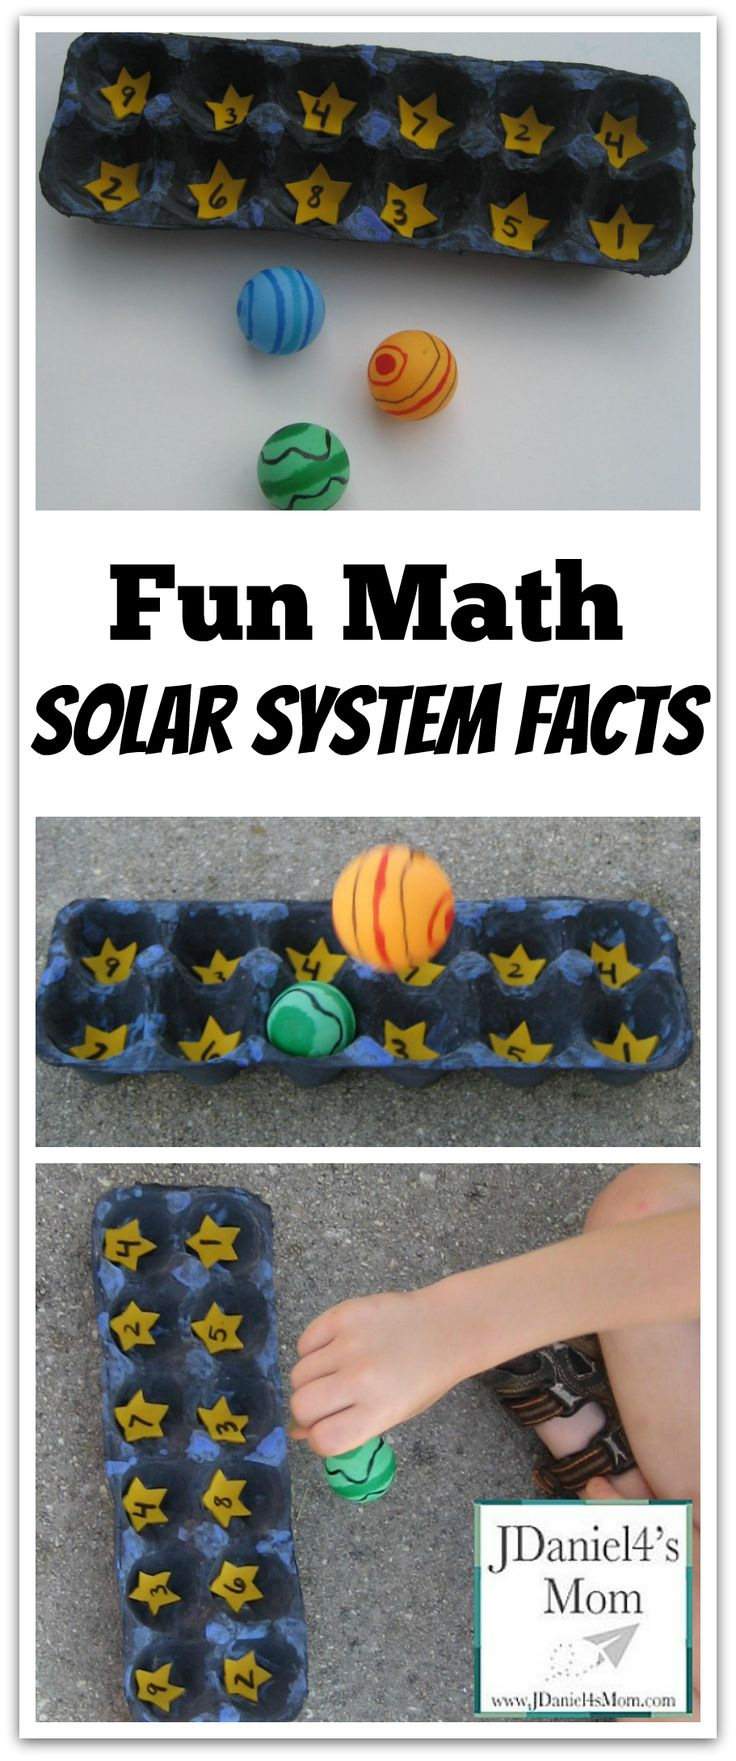 Math Fun: Practice Math Fact with a Hands on Solar System Game!